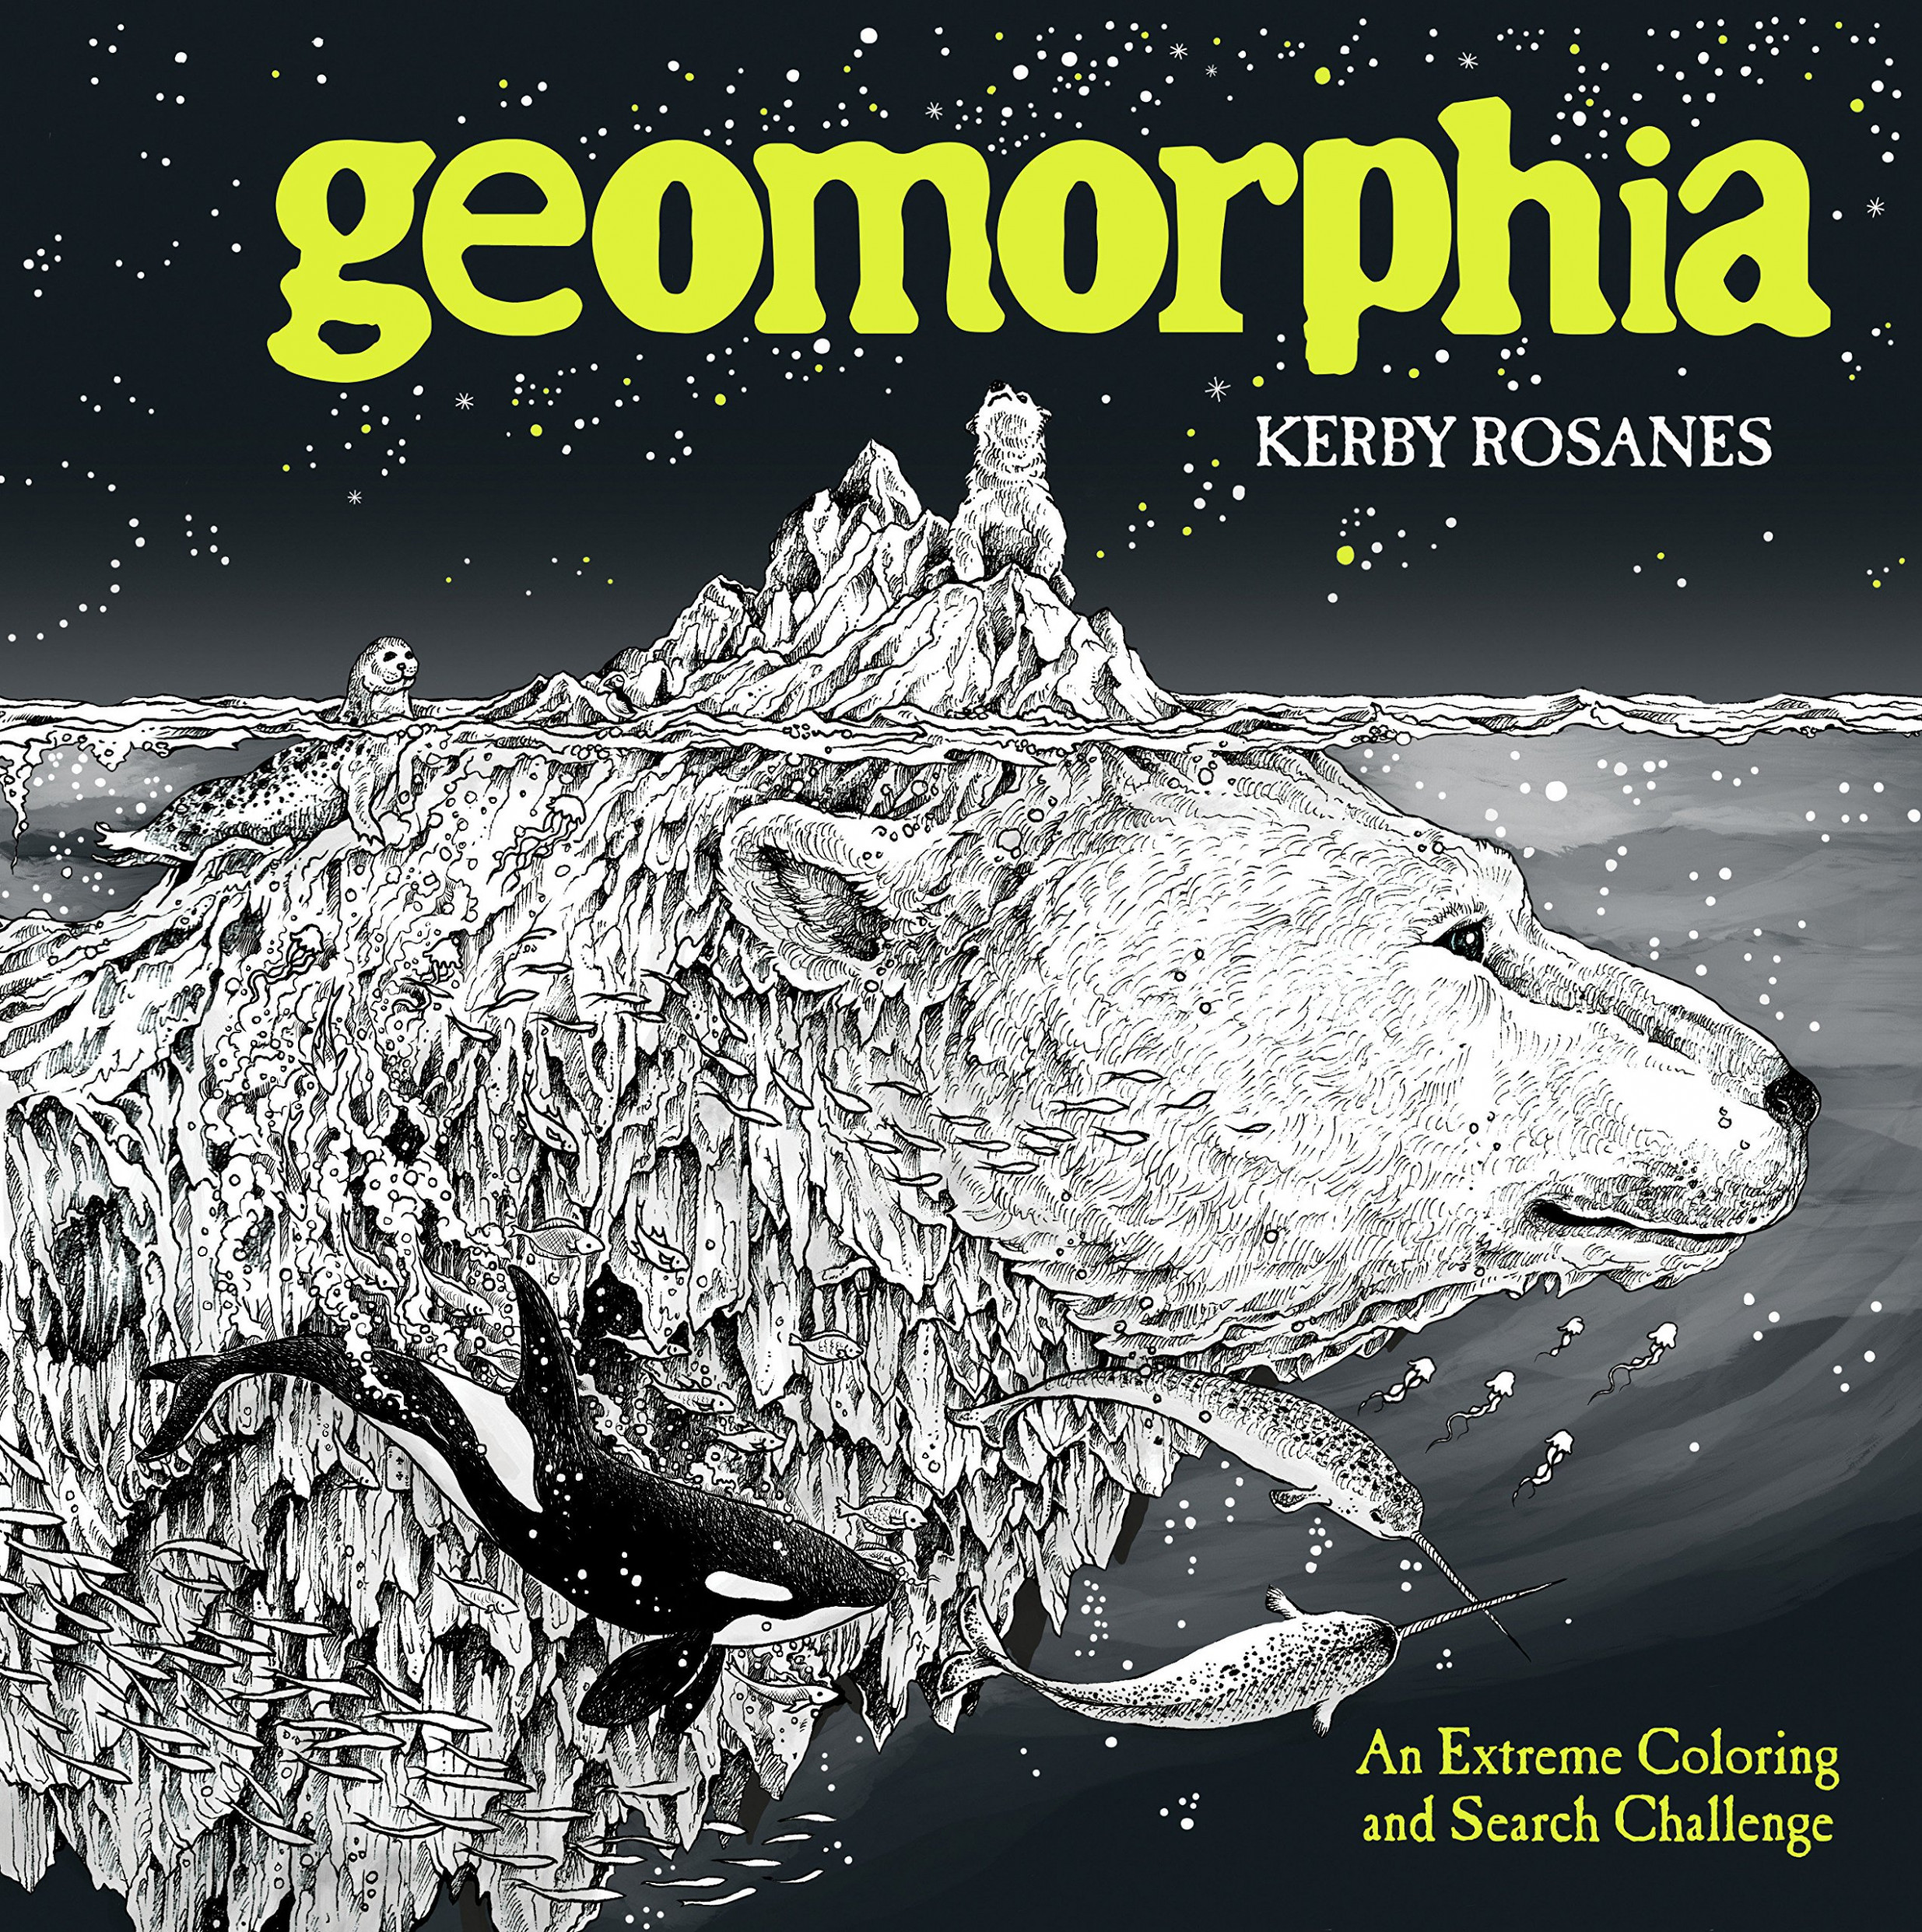 Amazon.com: Geomorphia: An Extreme Coloring and Search Challenge ...